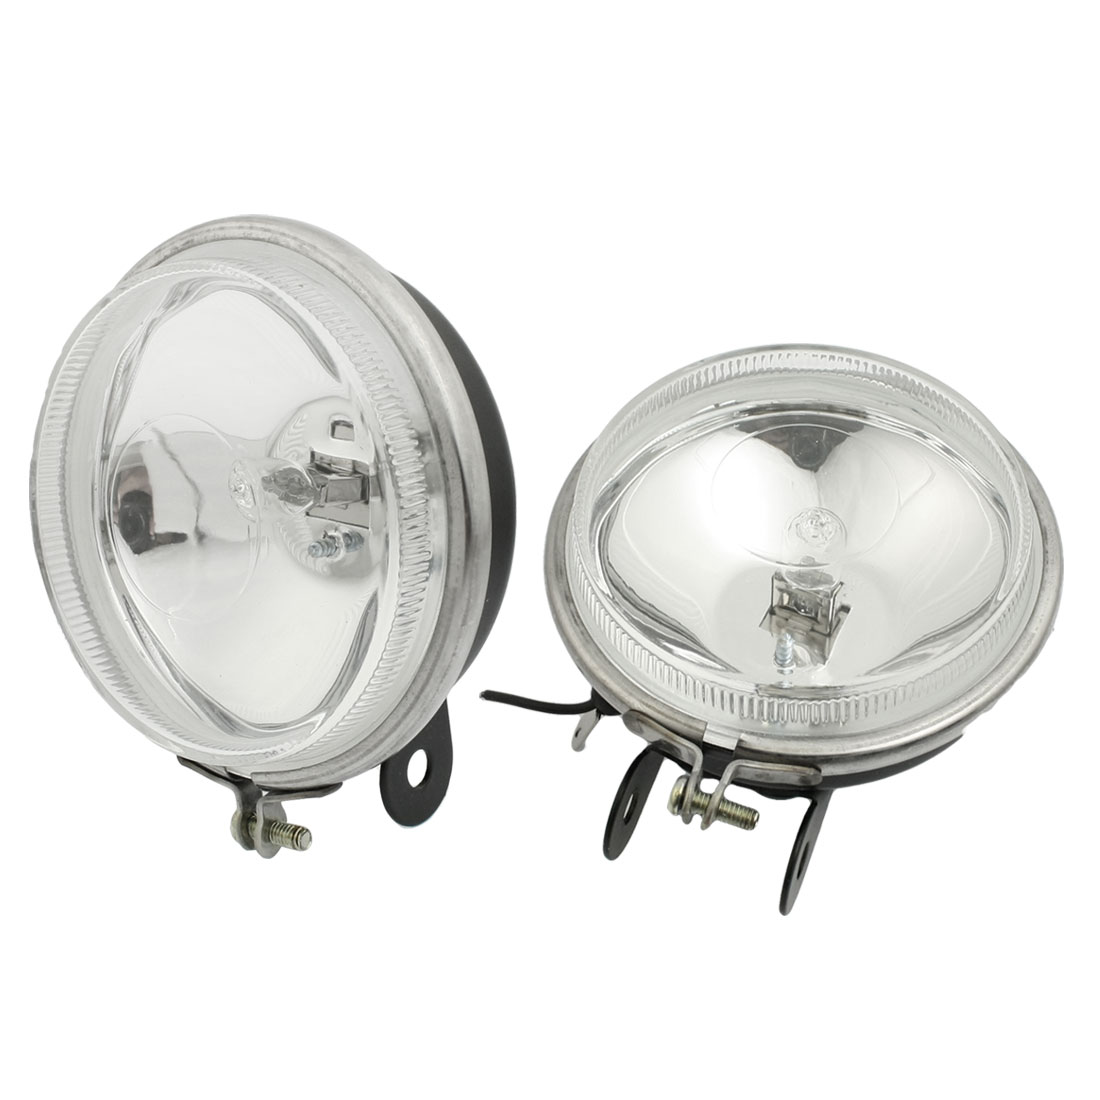 DC 12V 55W Warm White H3 Bulb Car Halogen Light Fog Head Lamp Pair internal